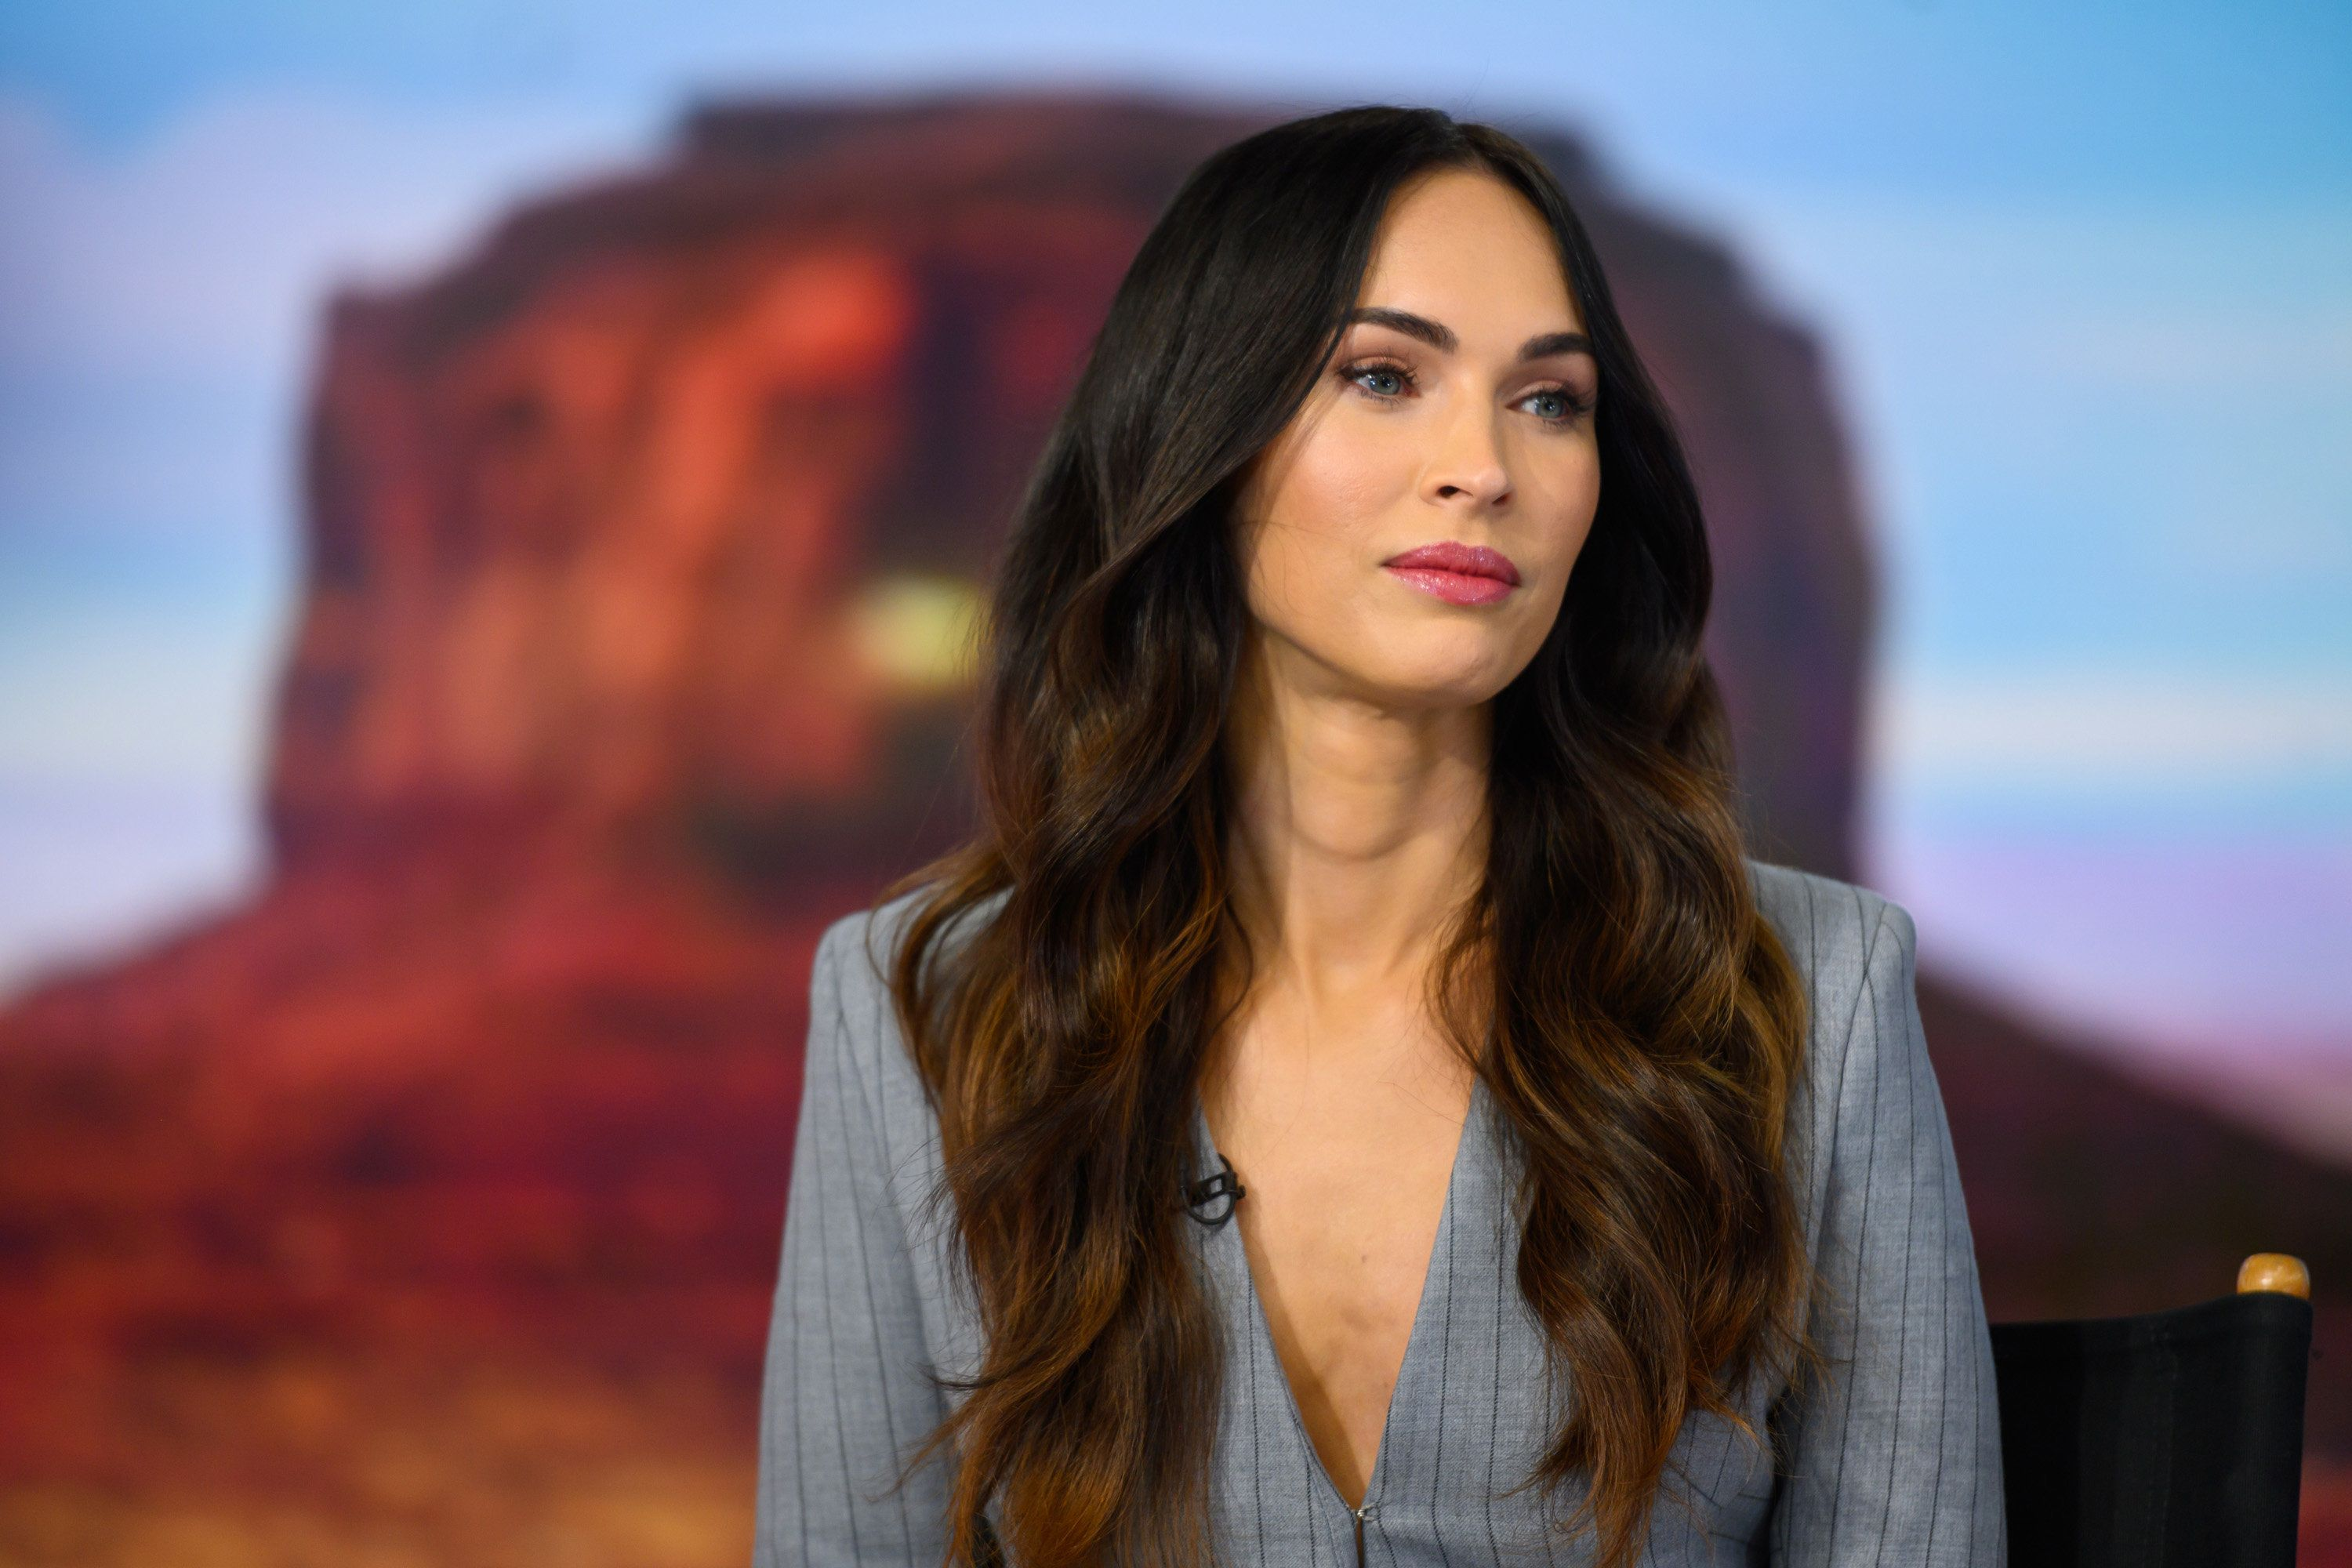 TODAY -- Pictured: Megan Fox on Wednesday, November 28, 2018 -- (Photo by: Nathan Congleton/NBC/NBCU Photo Bank via Getty Images)